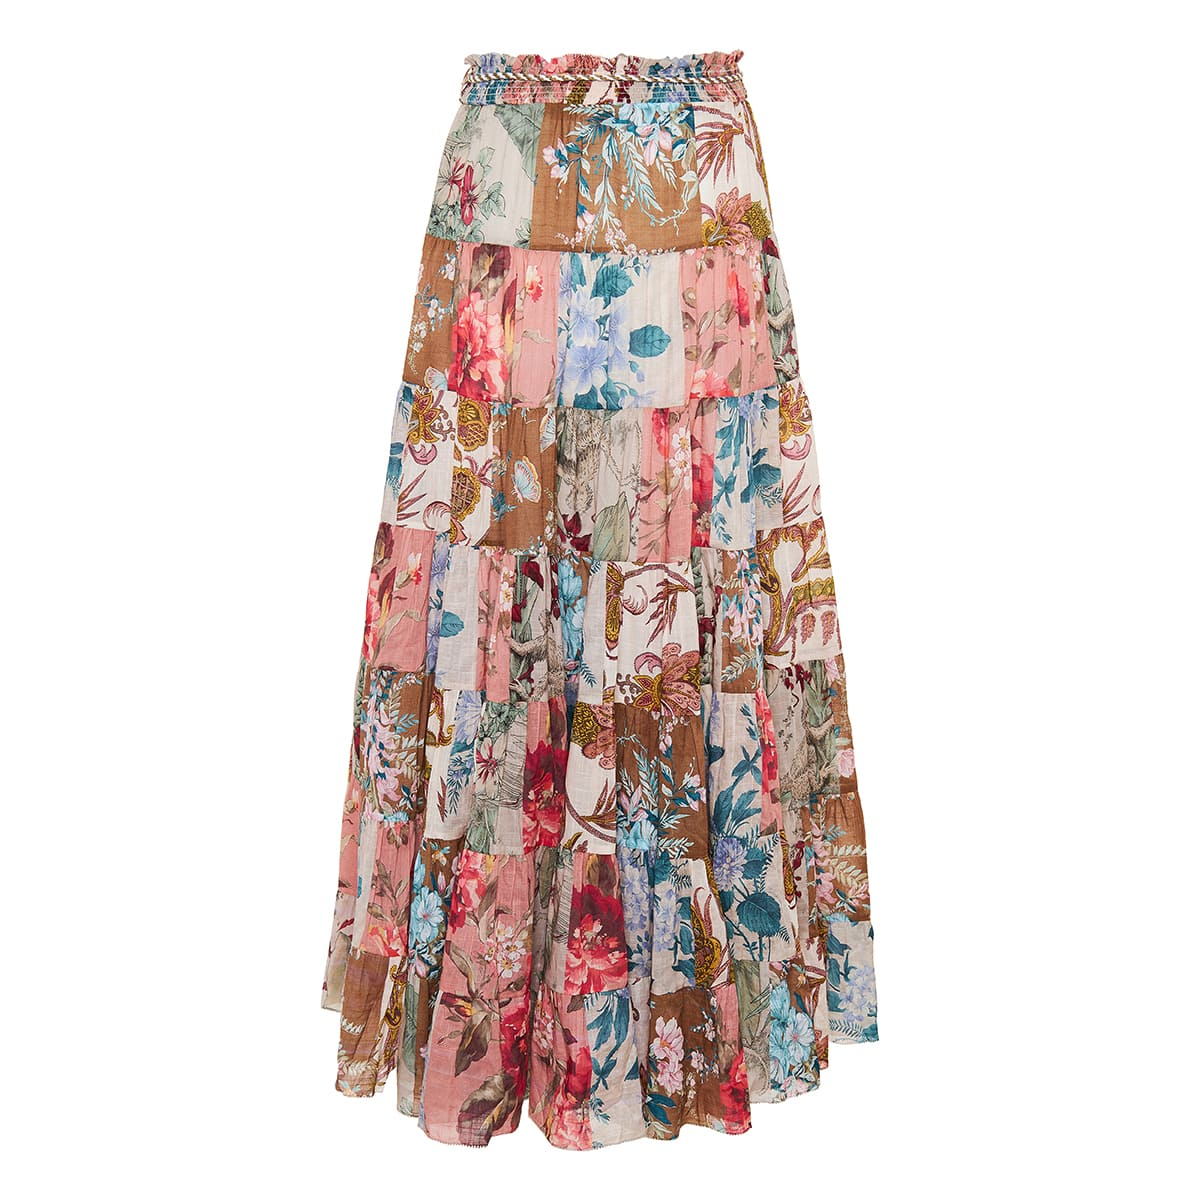 Cassia patchwork tiered midi skirt